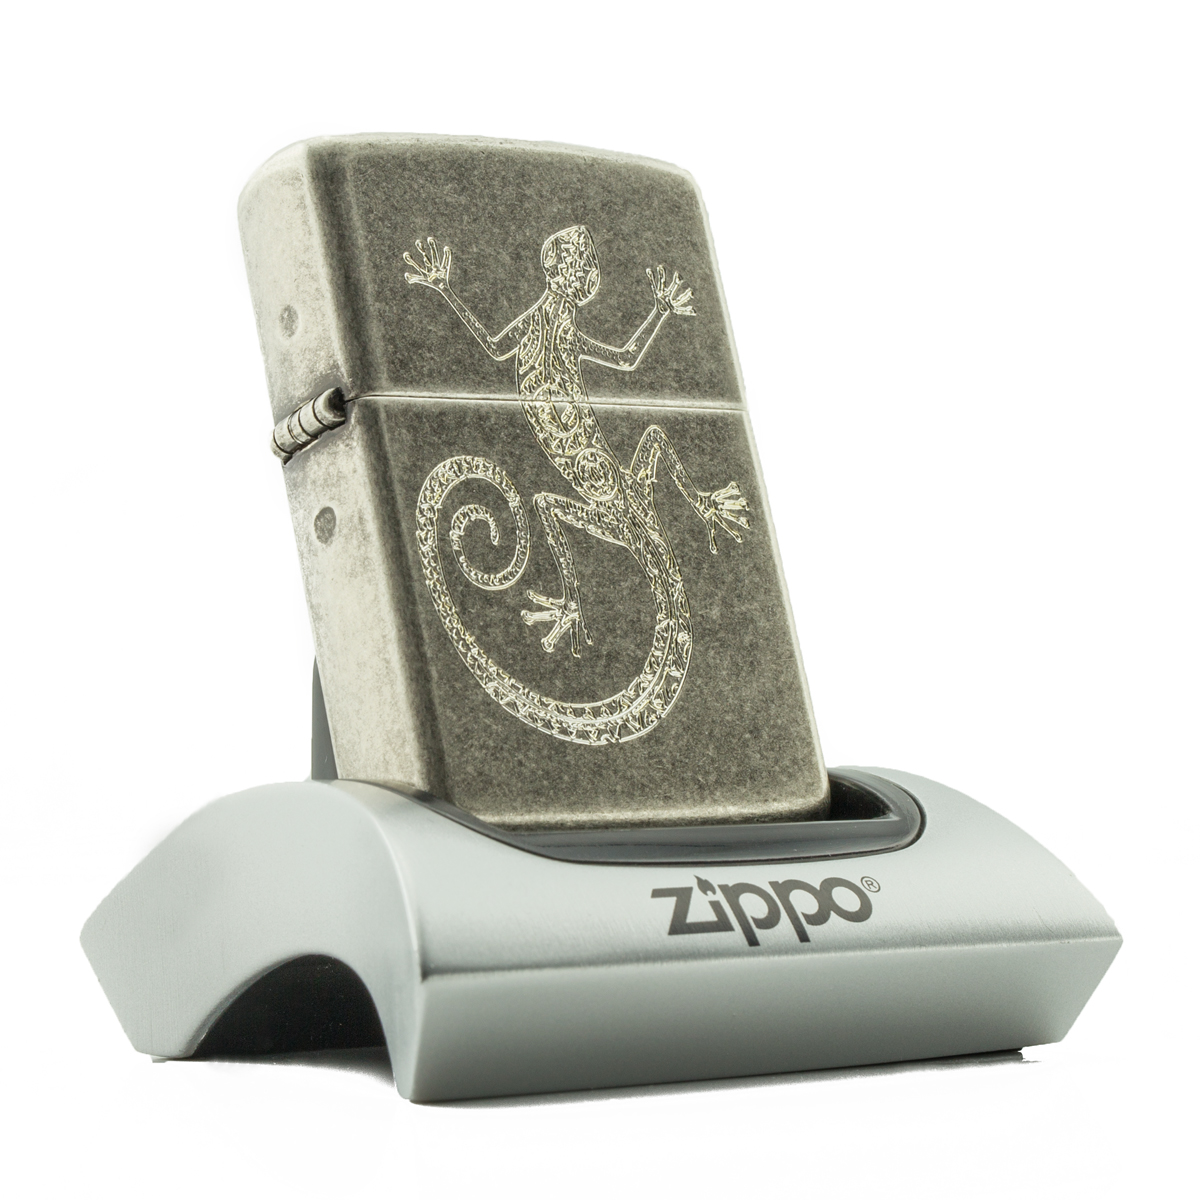 zippo-bac-co-antique-khac-hoa-van-than-lan